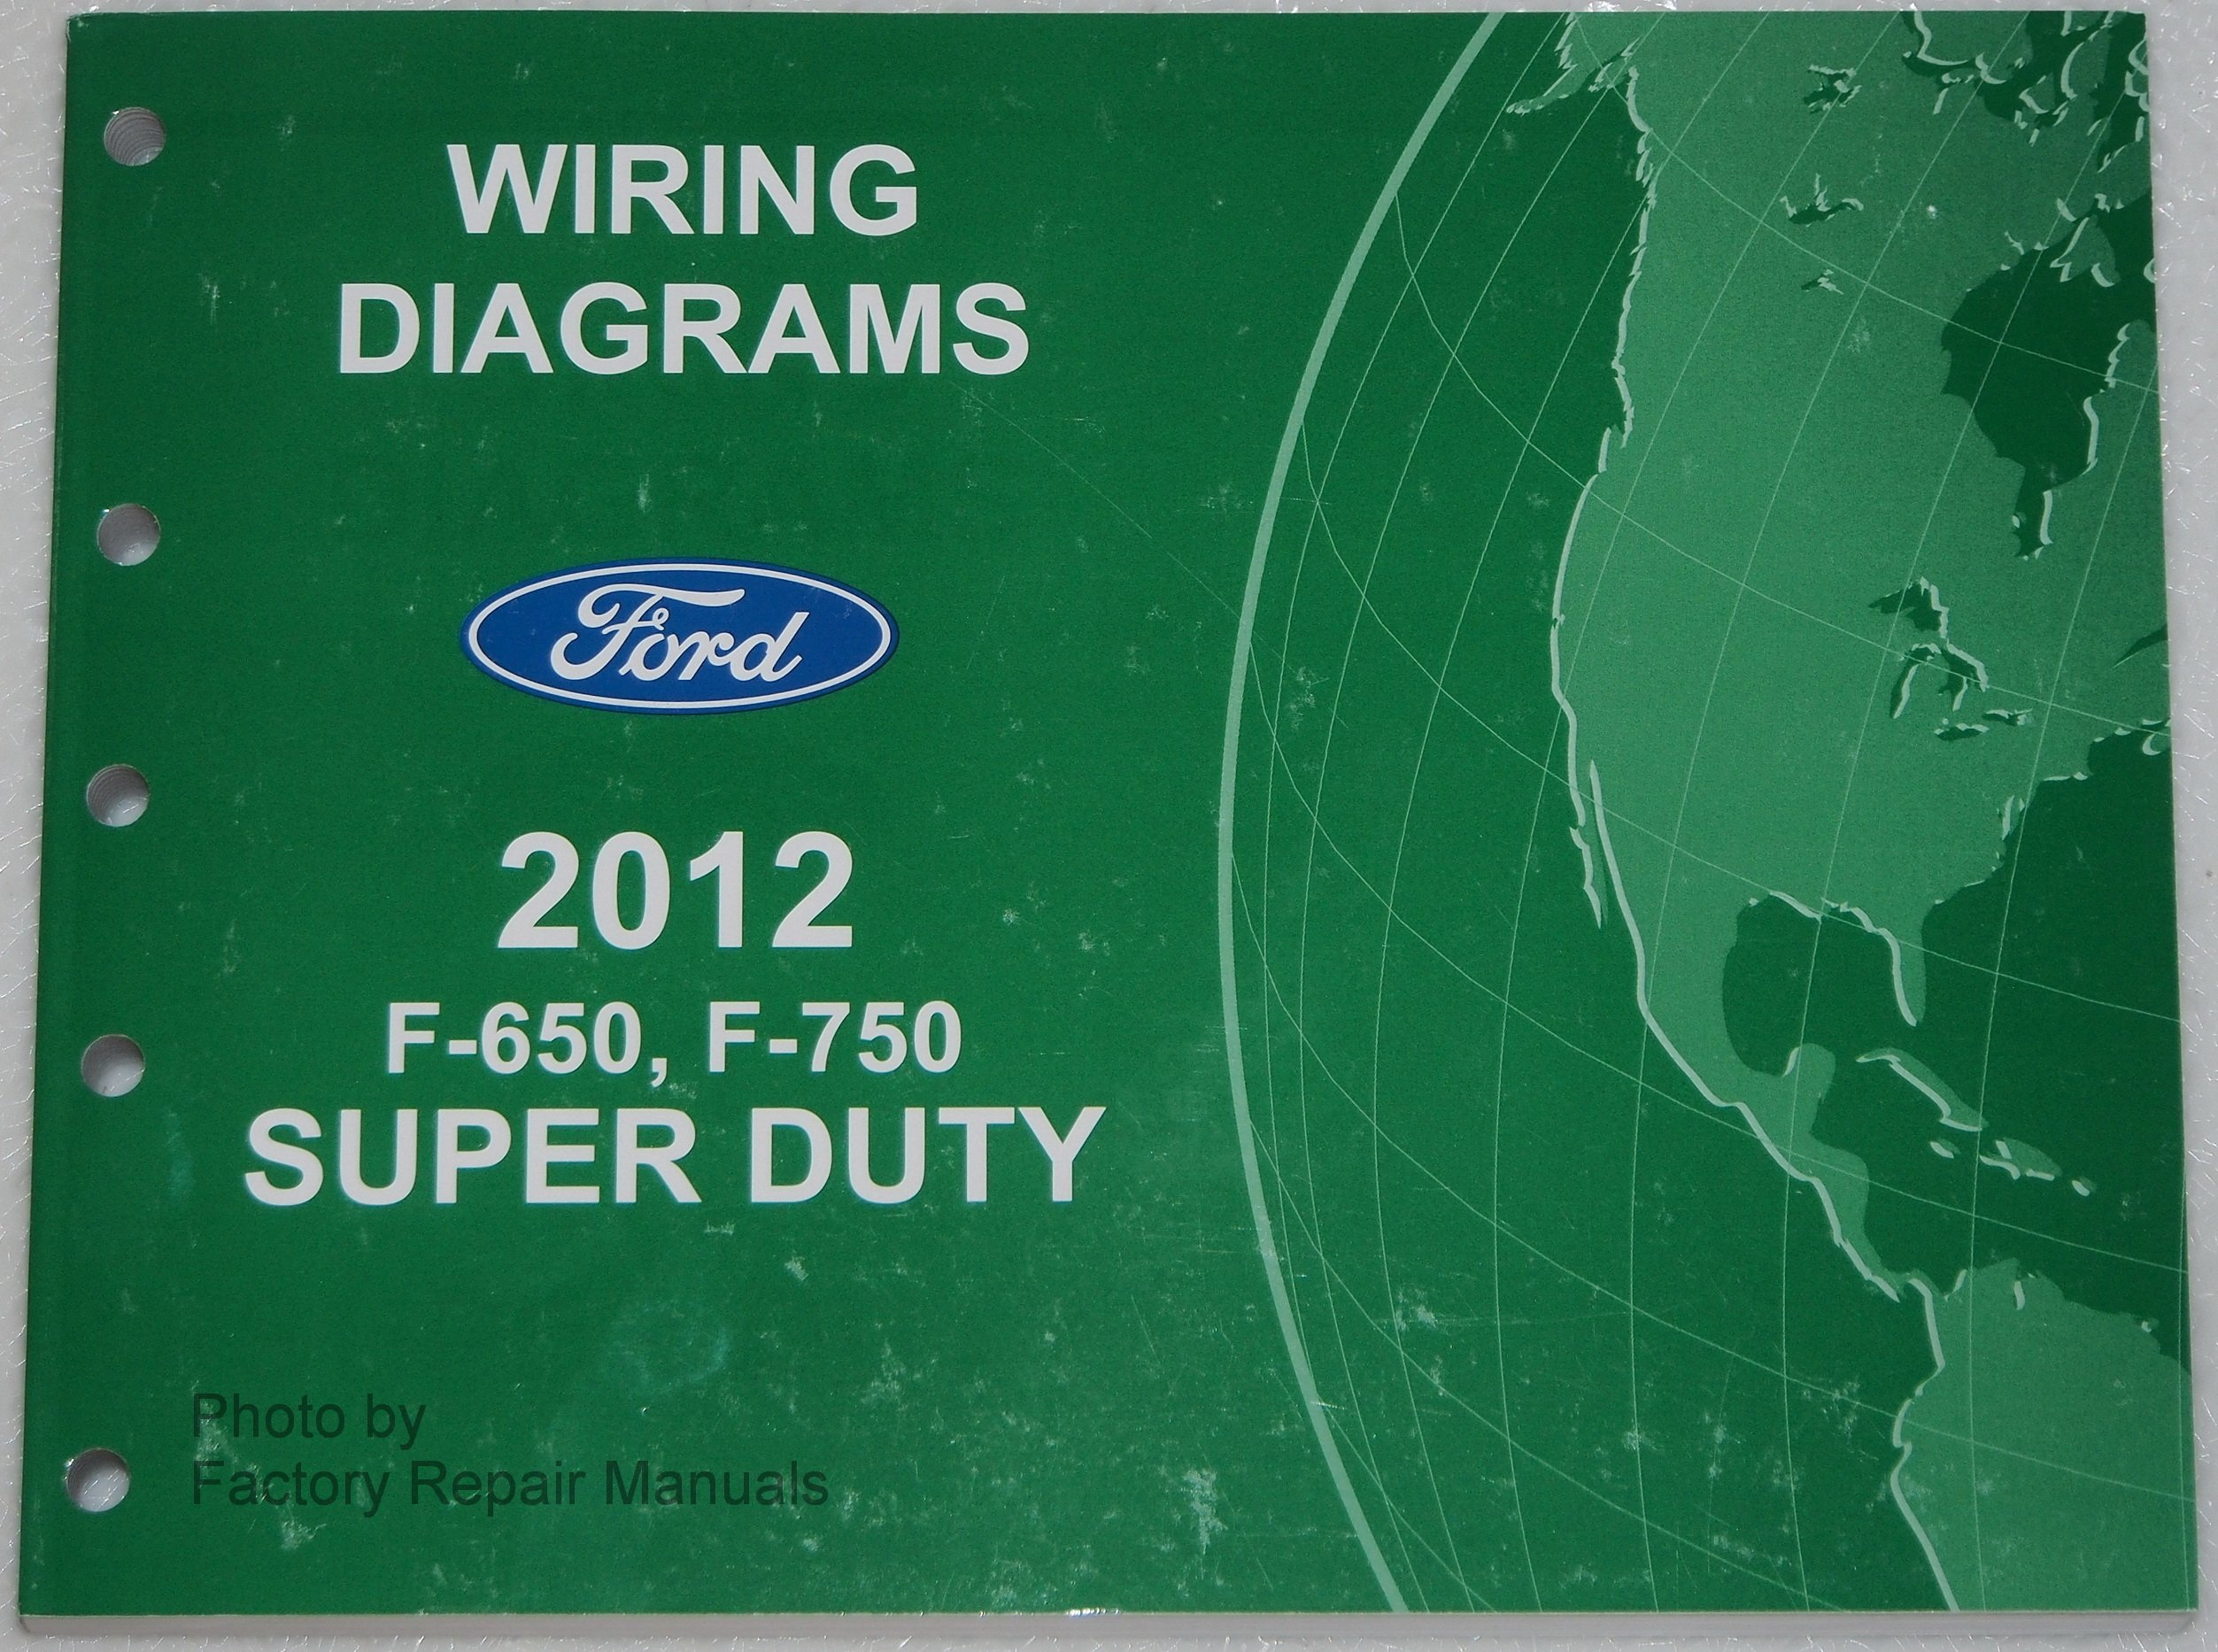 91KkFIScY%2BL 2012 f650 f750 wiring diagram ford motor company amazon com books 2013 ford wiring diagram at gsmx.co